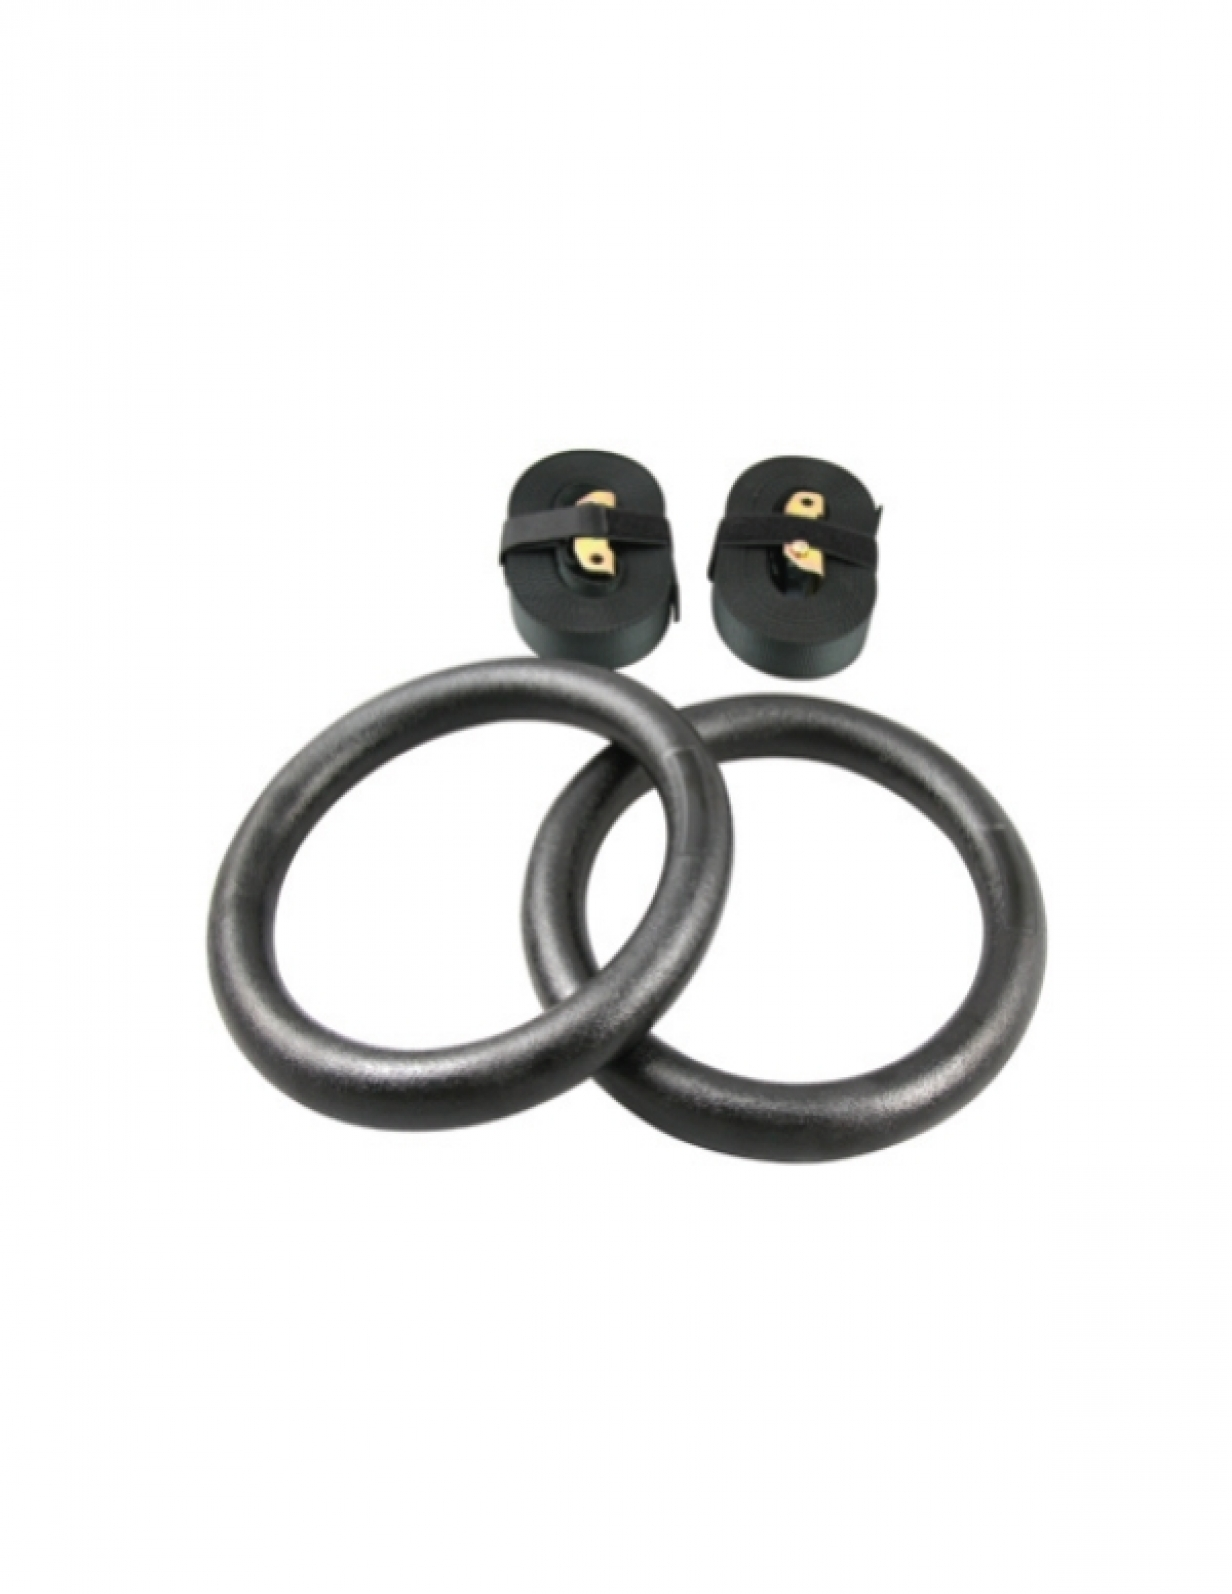 W1828 Suspension Ring